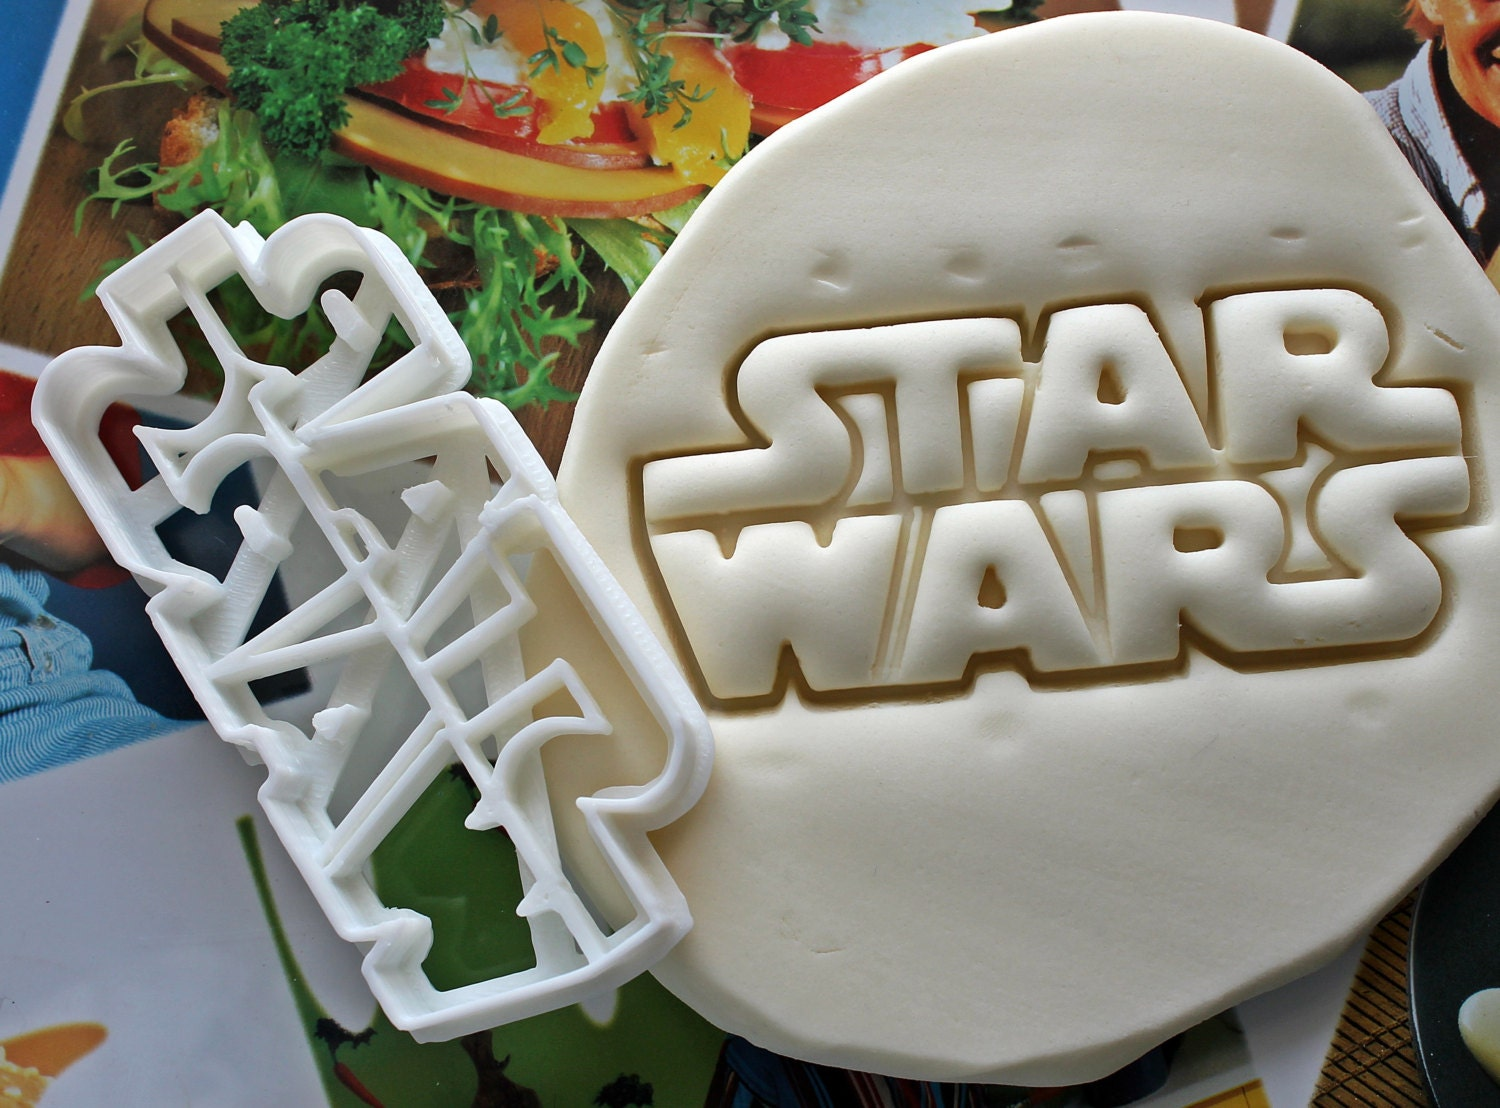 star wars letters cookie cutter made from biodegradable material brand new party favor kids birthday baby shower cake topper